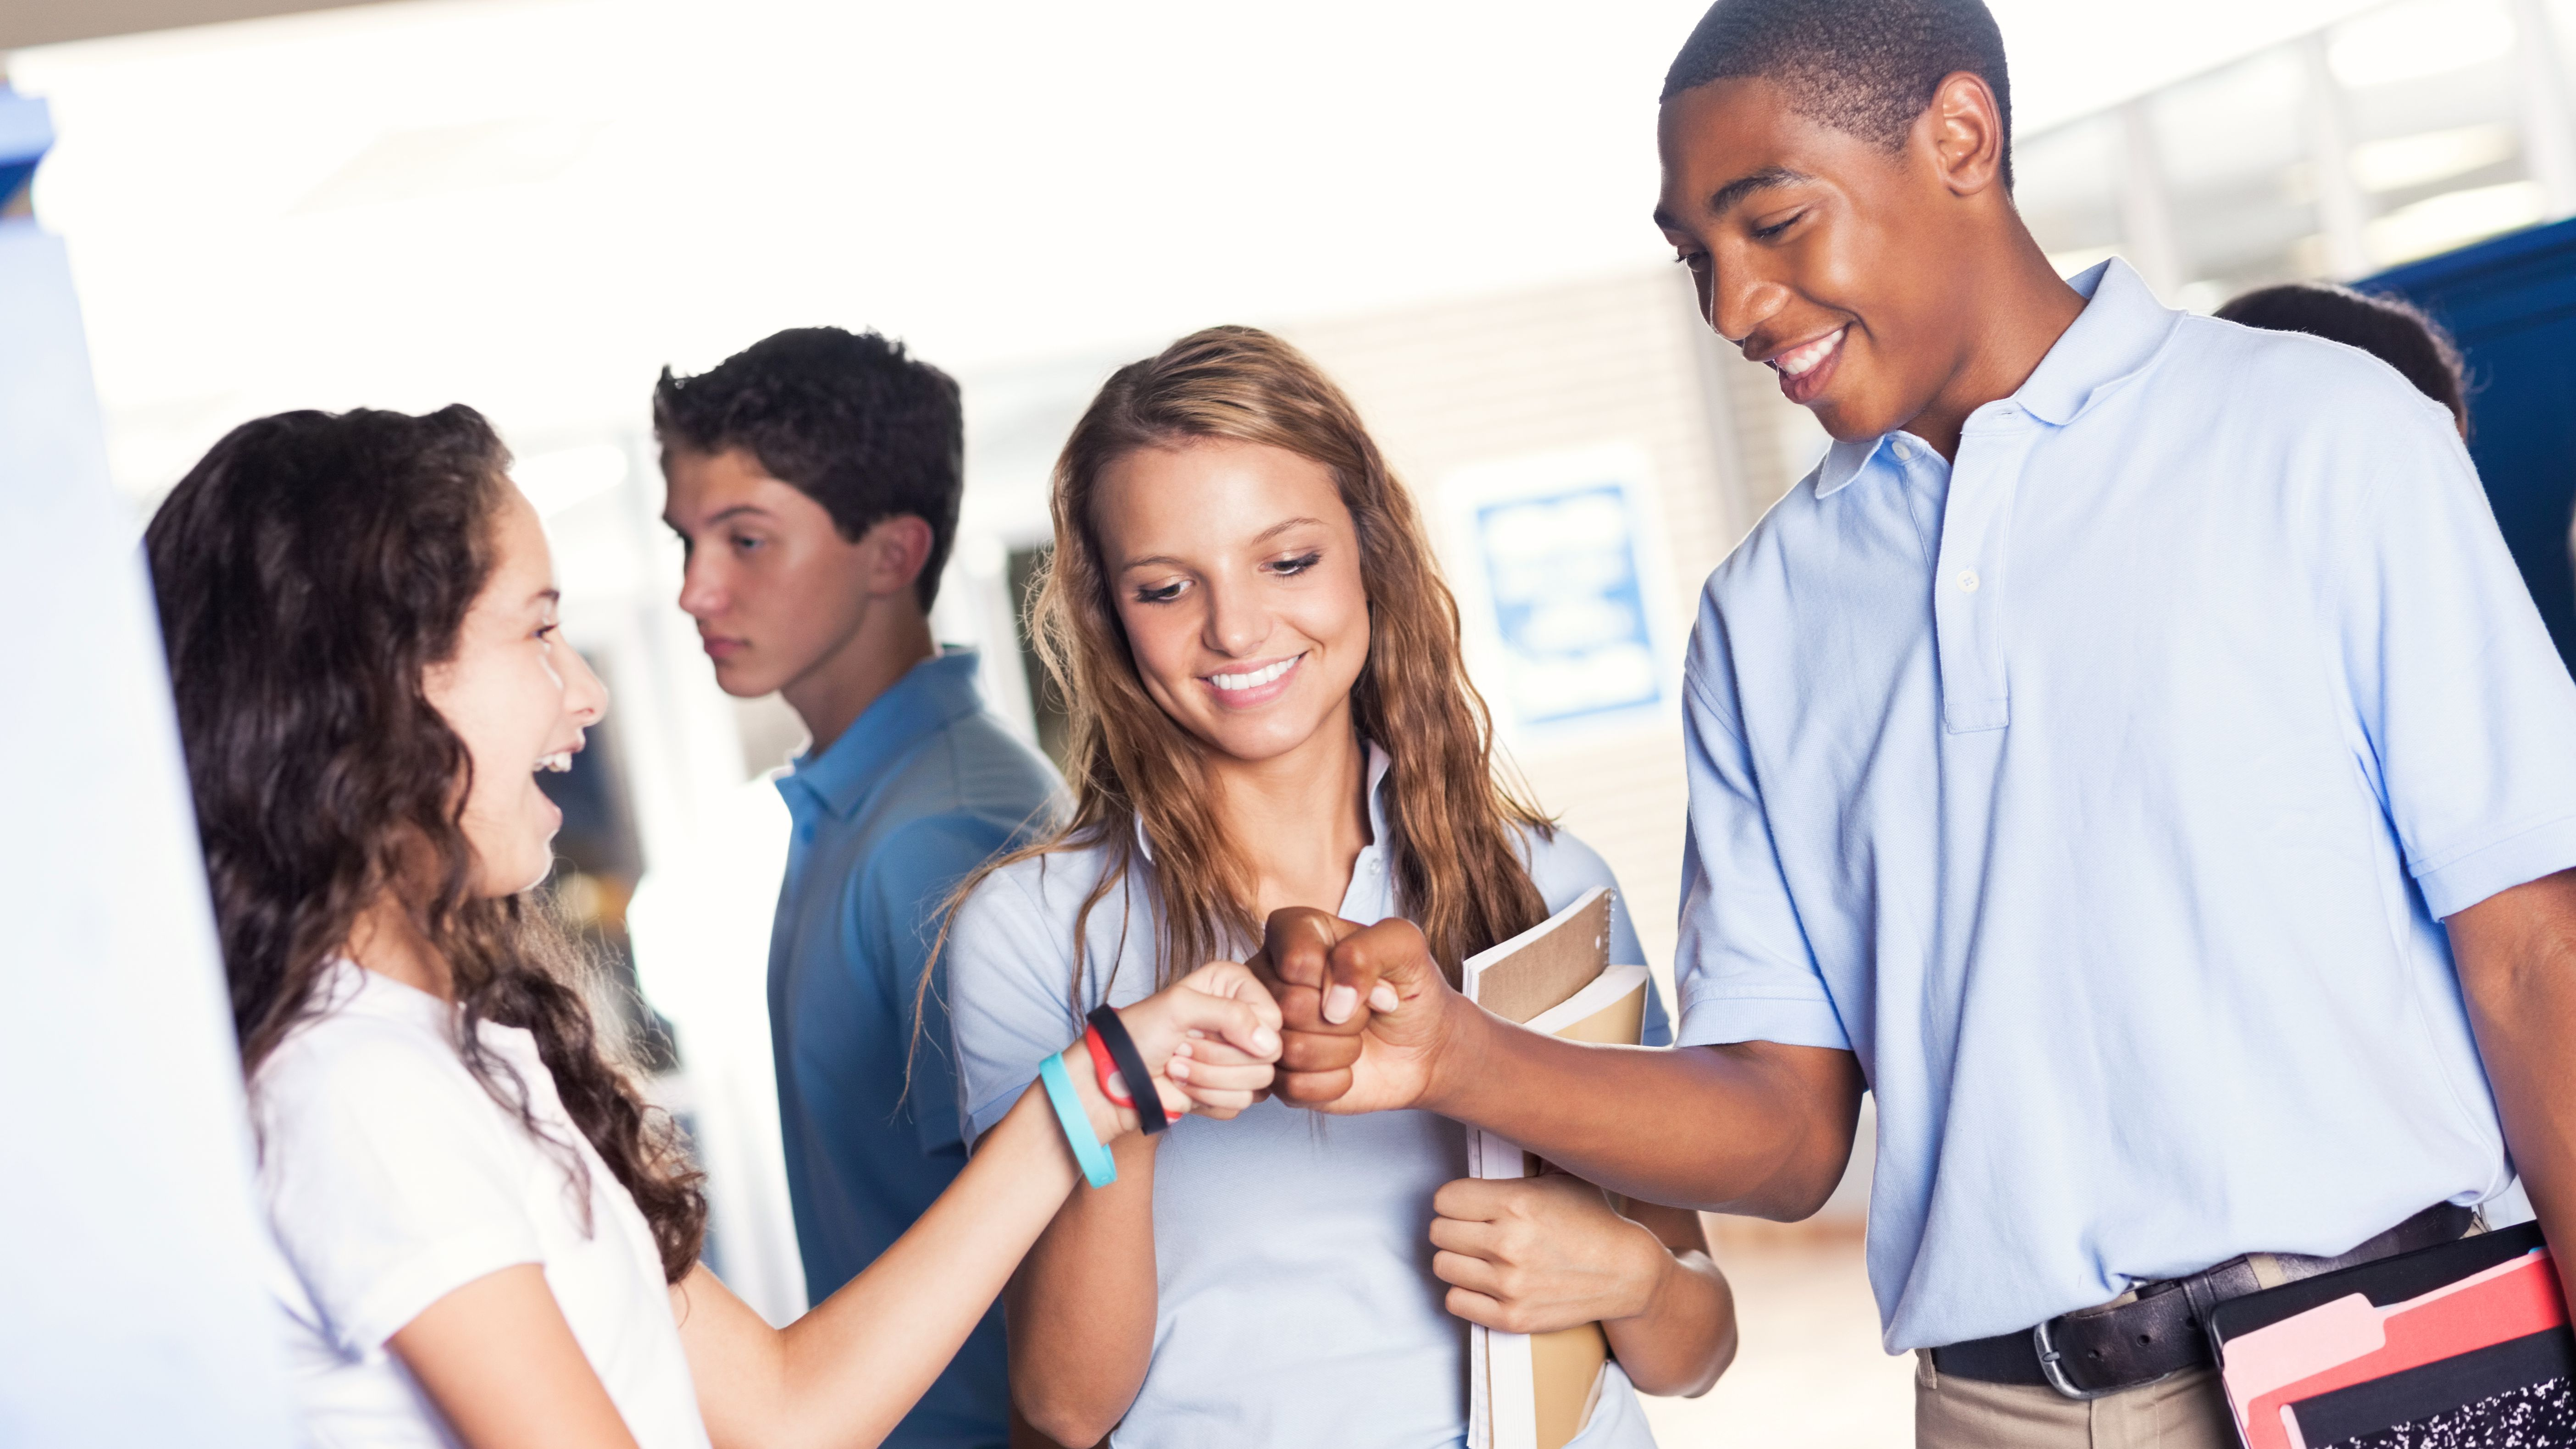 5 Common Private School Interview Questions